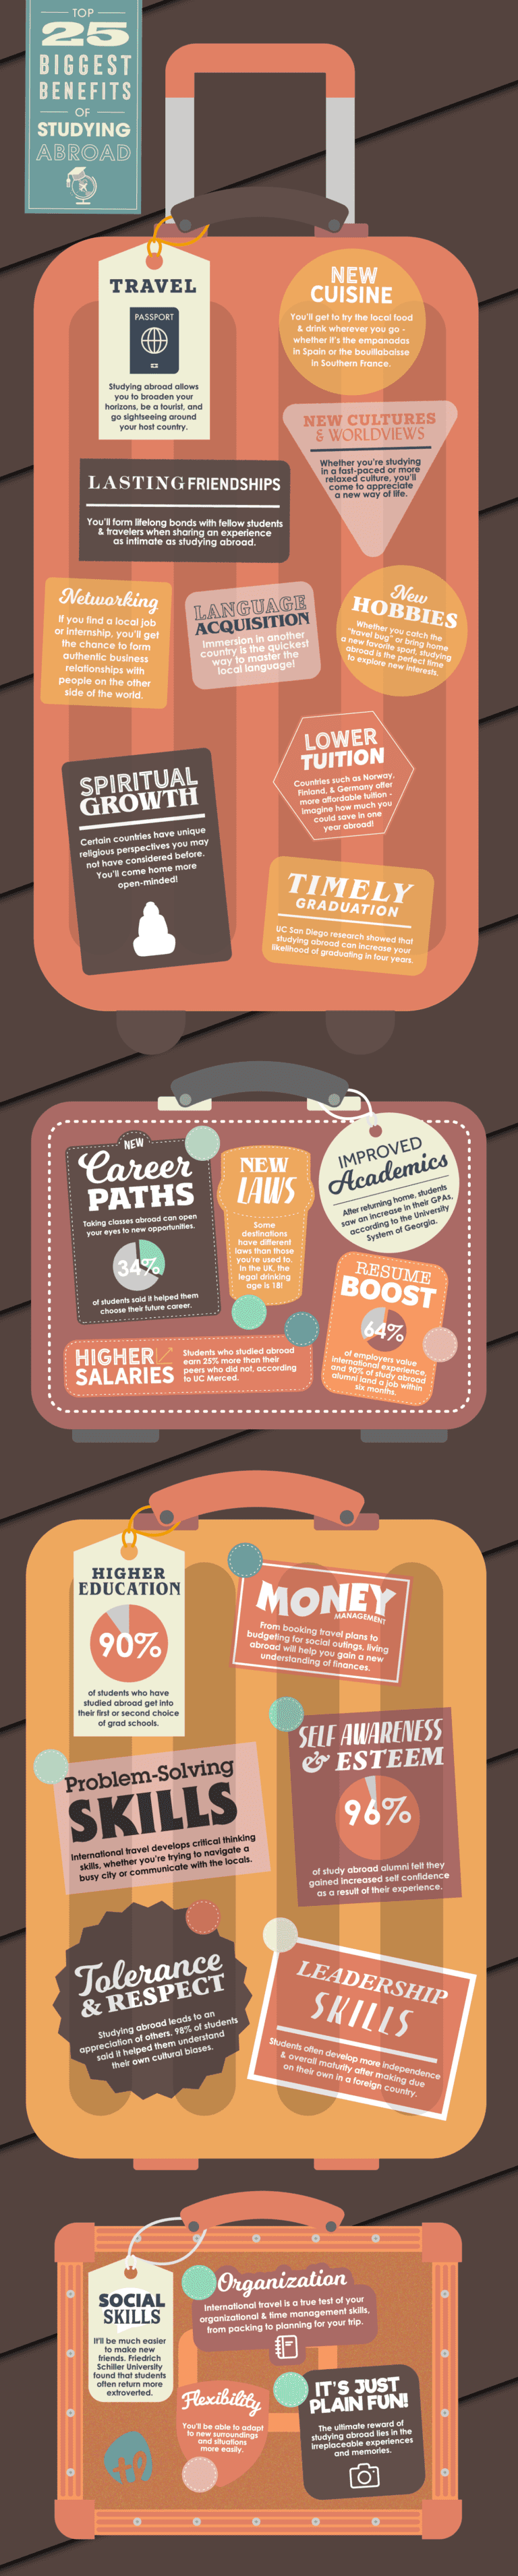 Top 25 Benefits of Studying Abroad #infographic